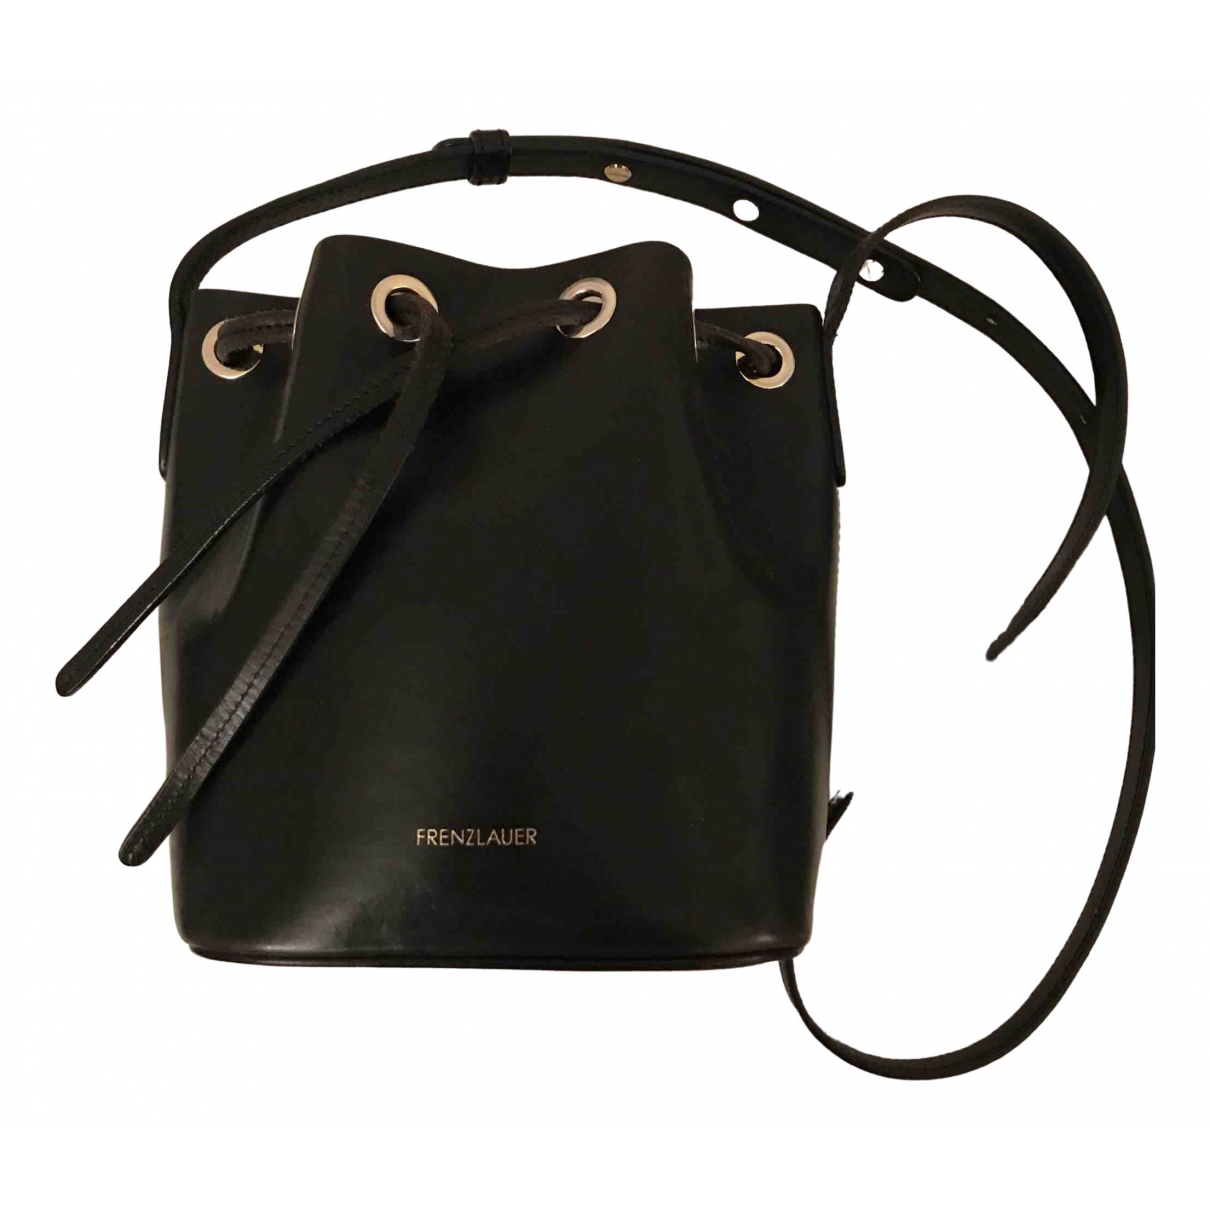 Frenzlauer \N Black Leather handbag for Women \N